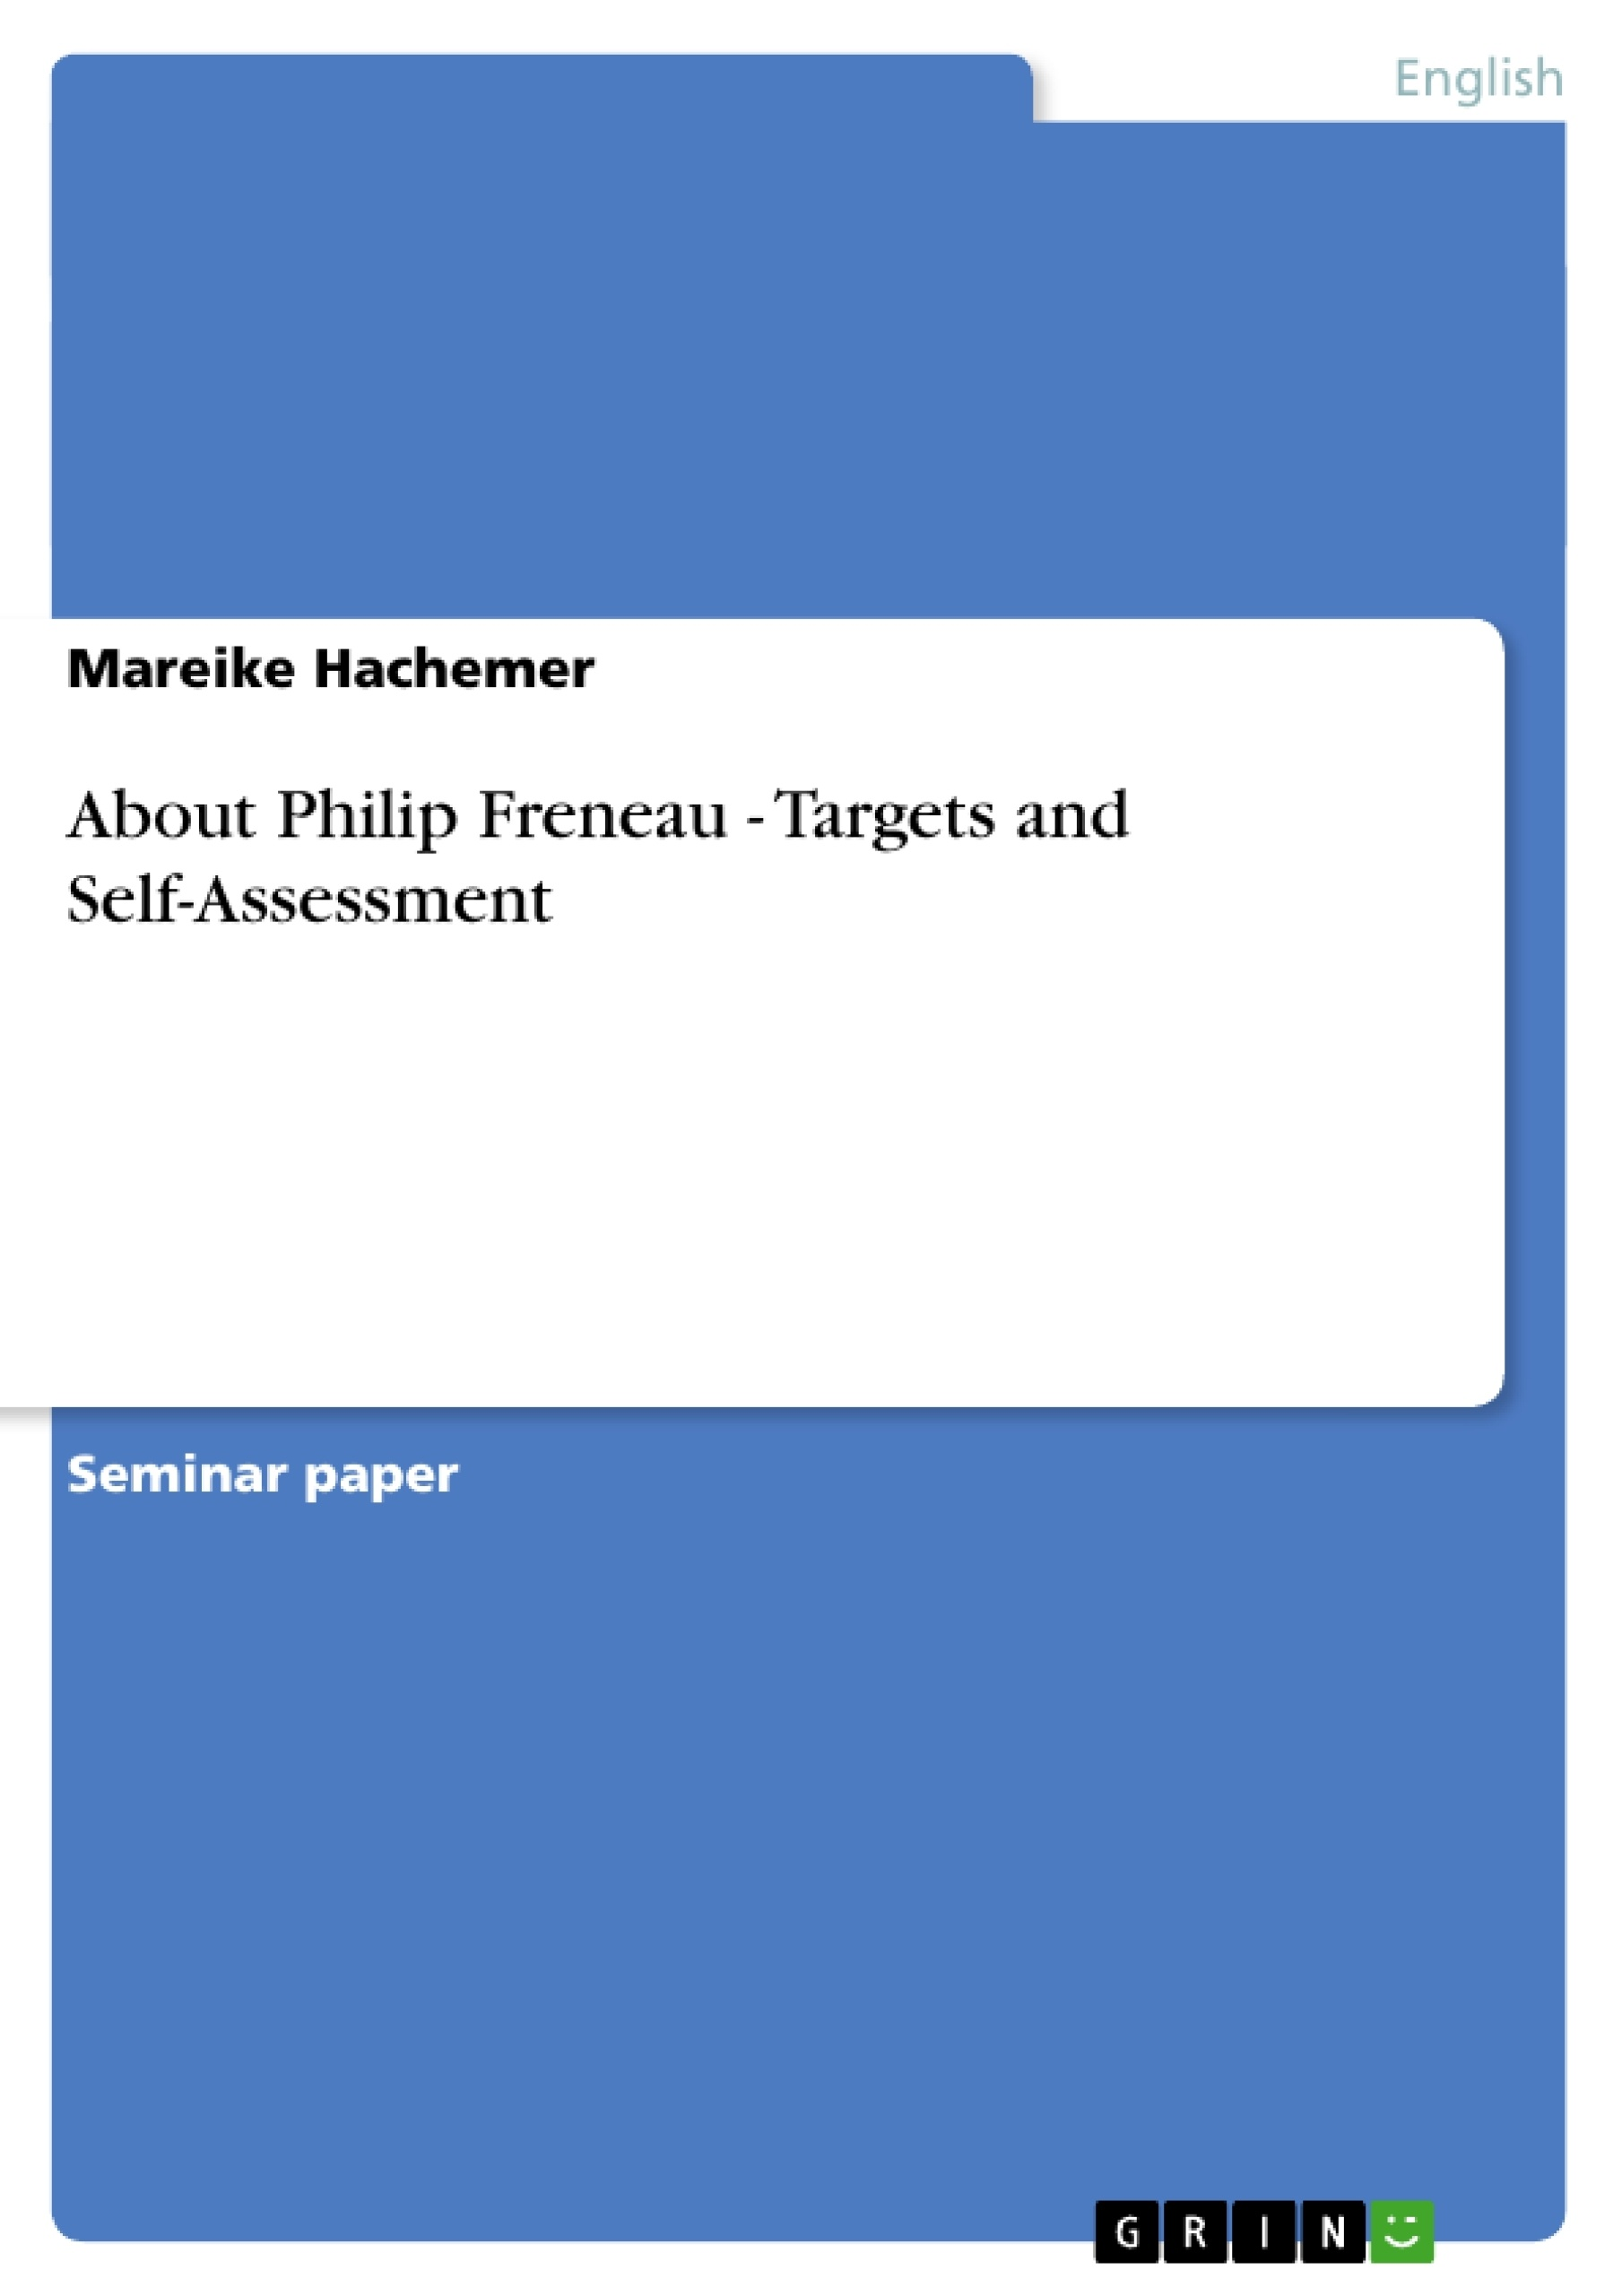 Title: About Philip Freneau - Targets and Self-Assessment